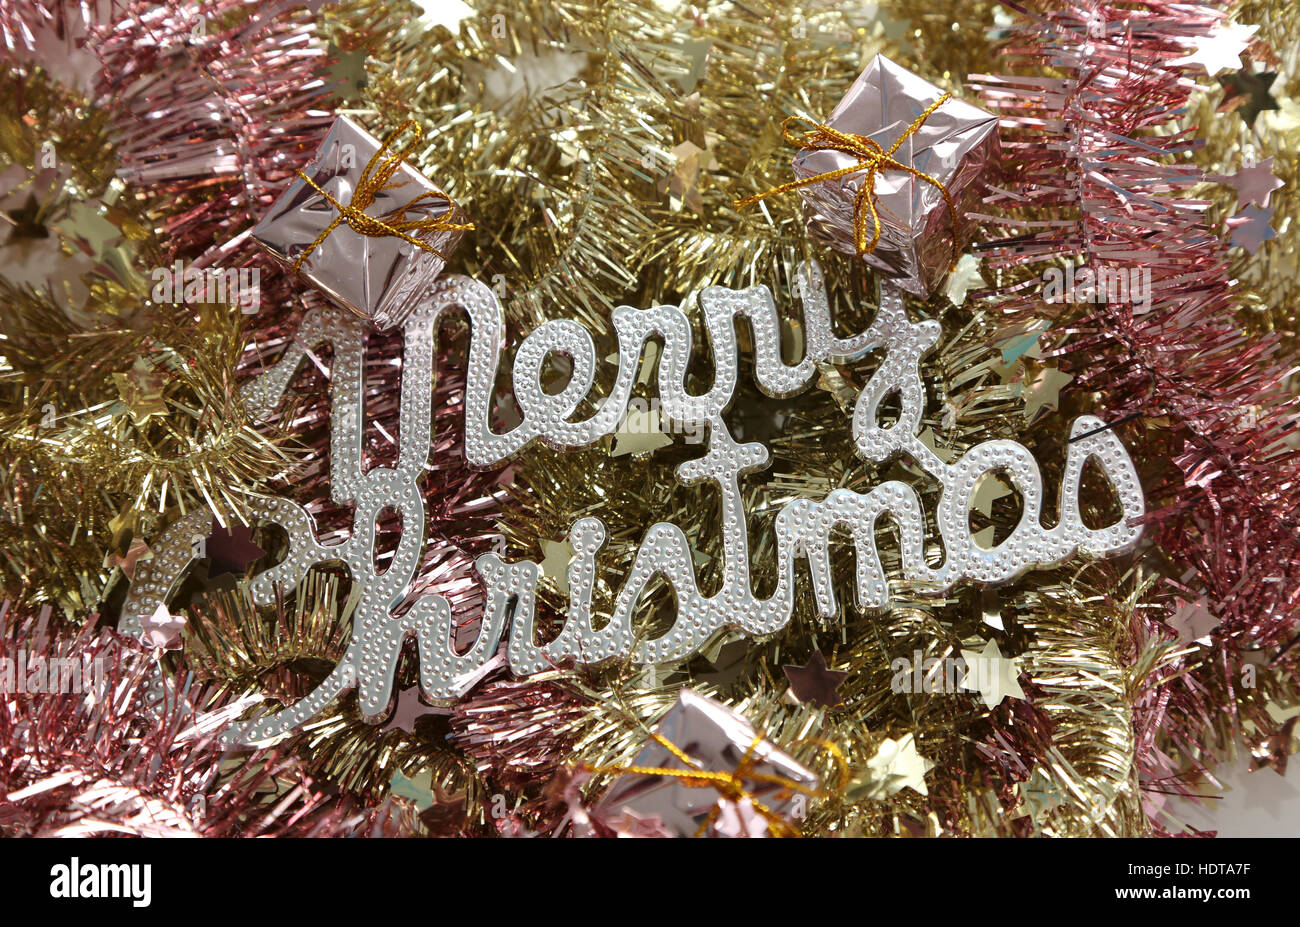 Merry Christmas on pink and golden tinsel - Stock Image